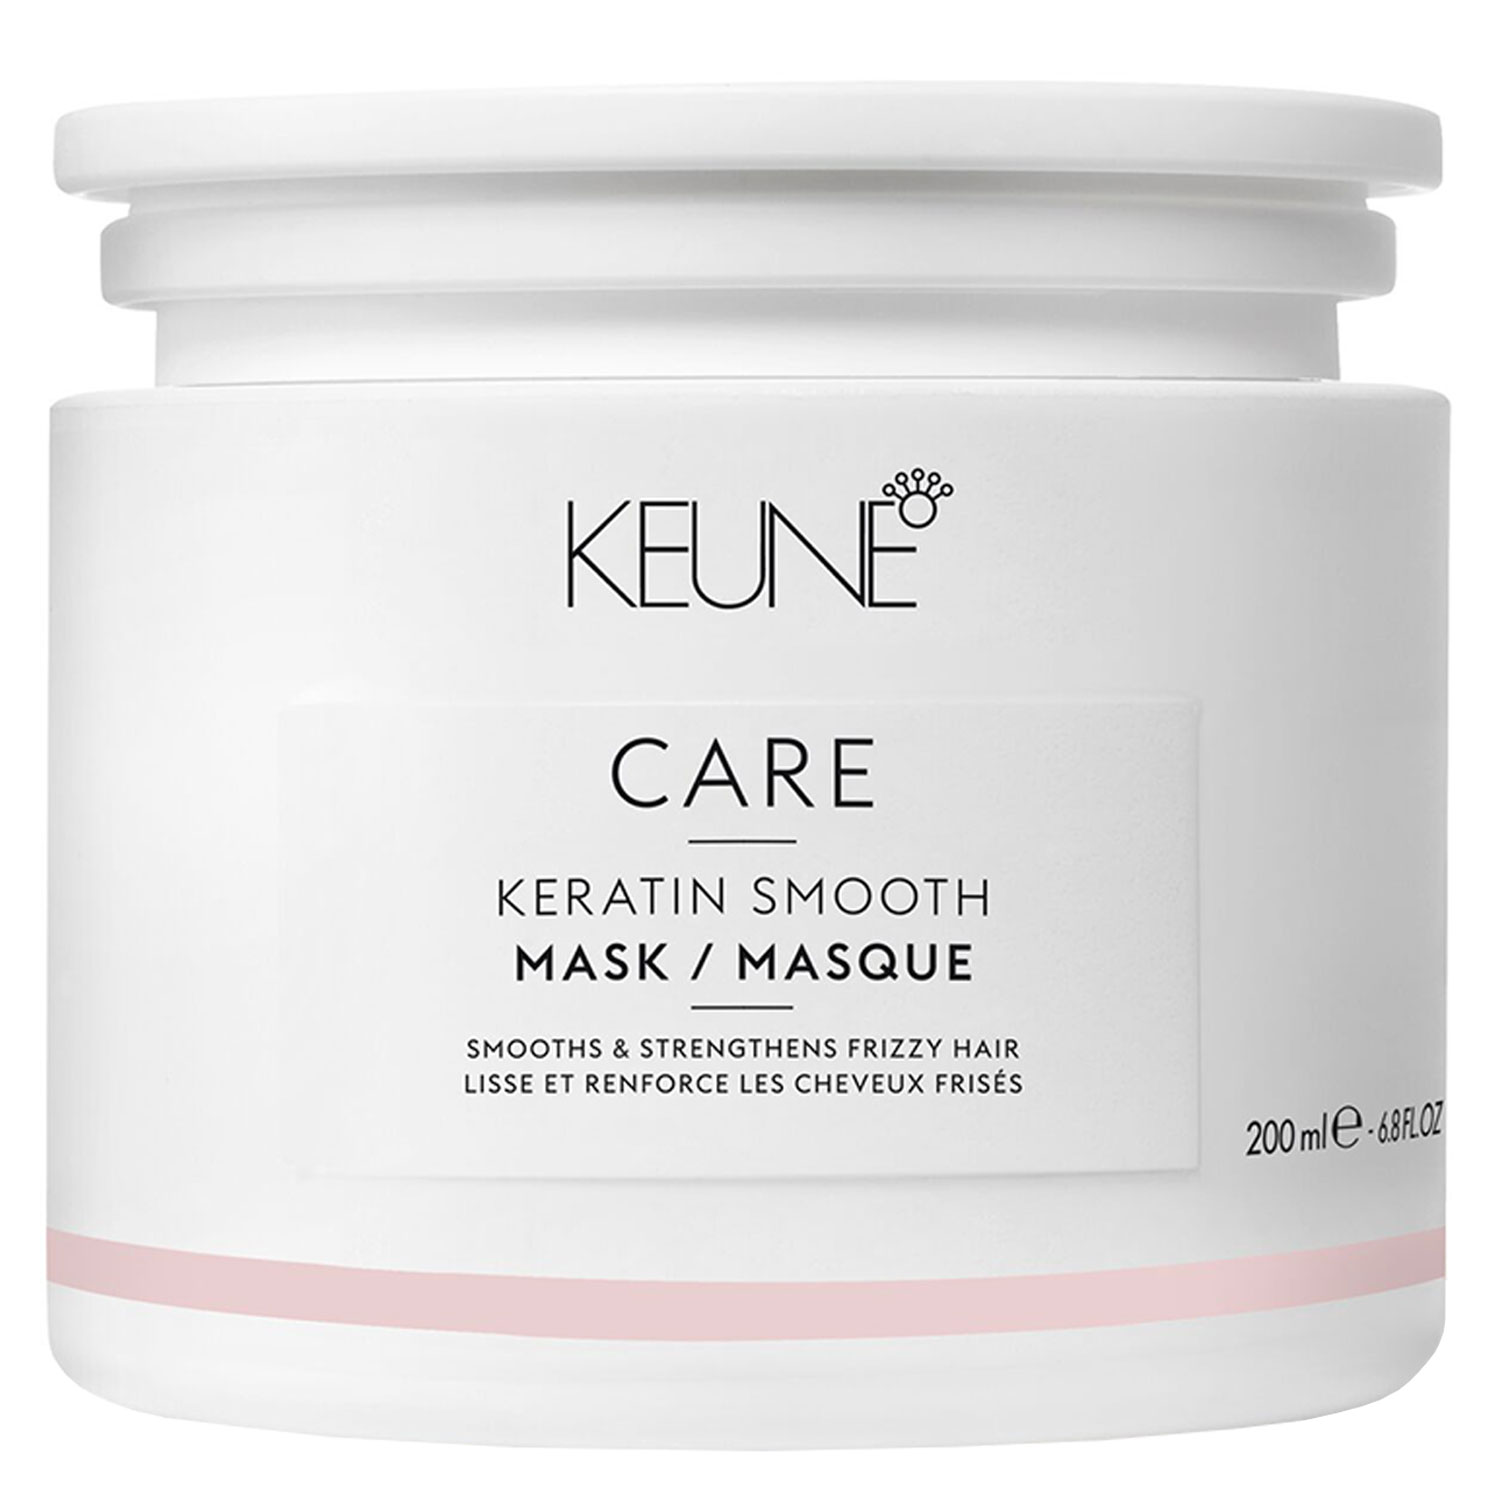 Keune Care - Keratin Smooth Mask